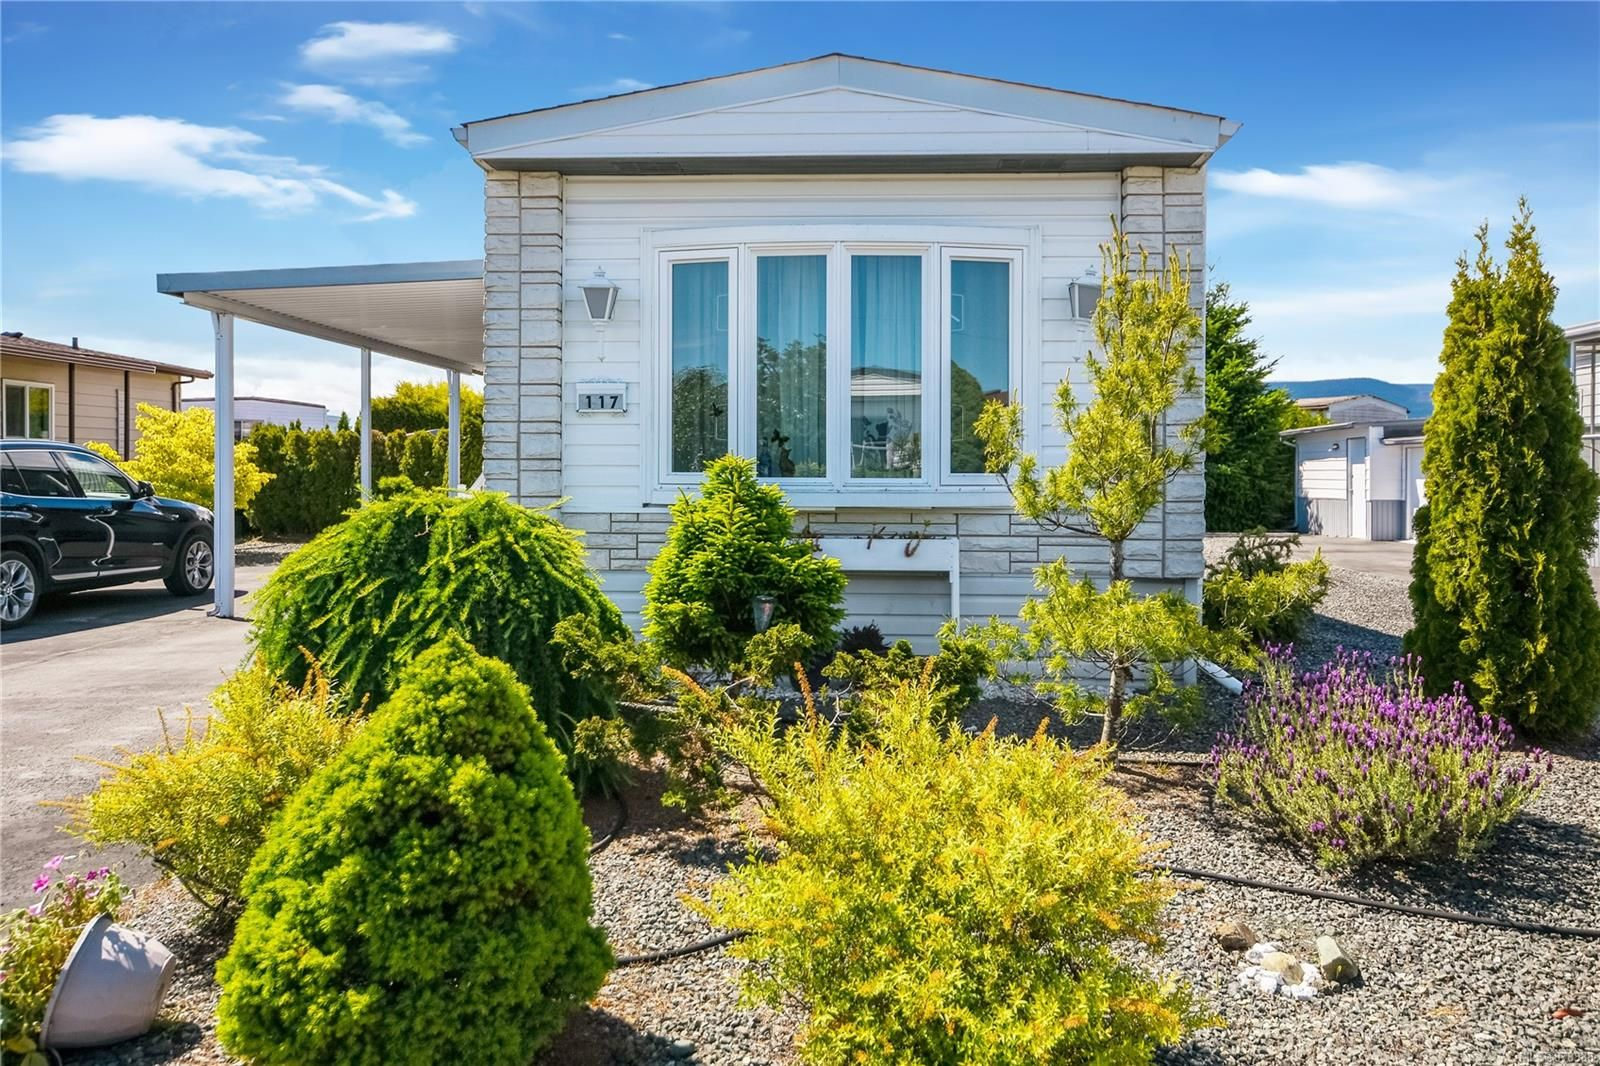 Main Photo: 117 6325 Metral Dr in : Na Pleasant Valley Manufactured Home for sale (Nanaimo)  : MLS®# 878388